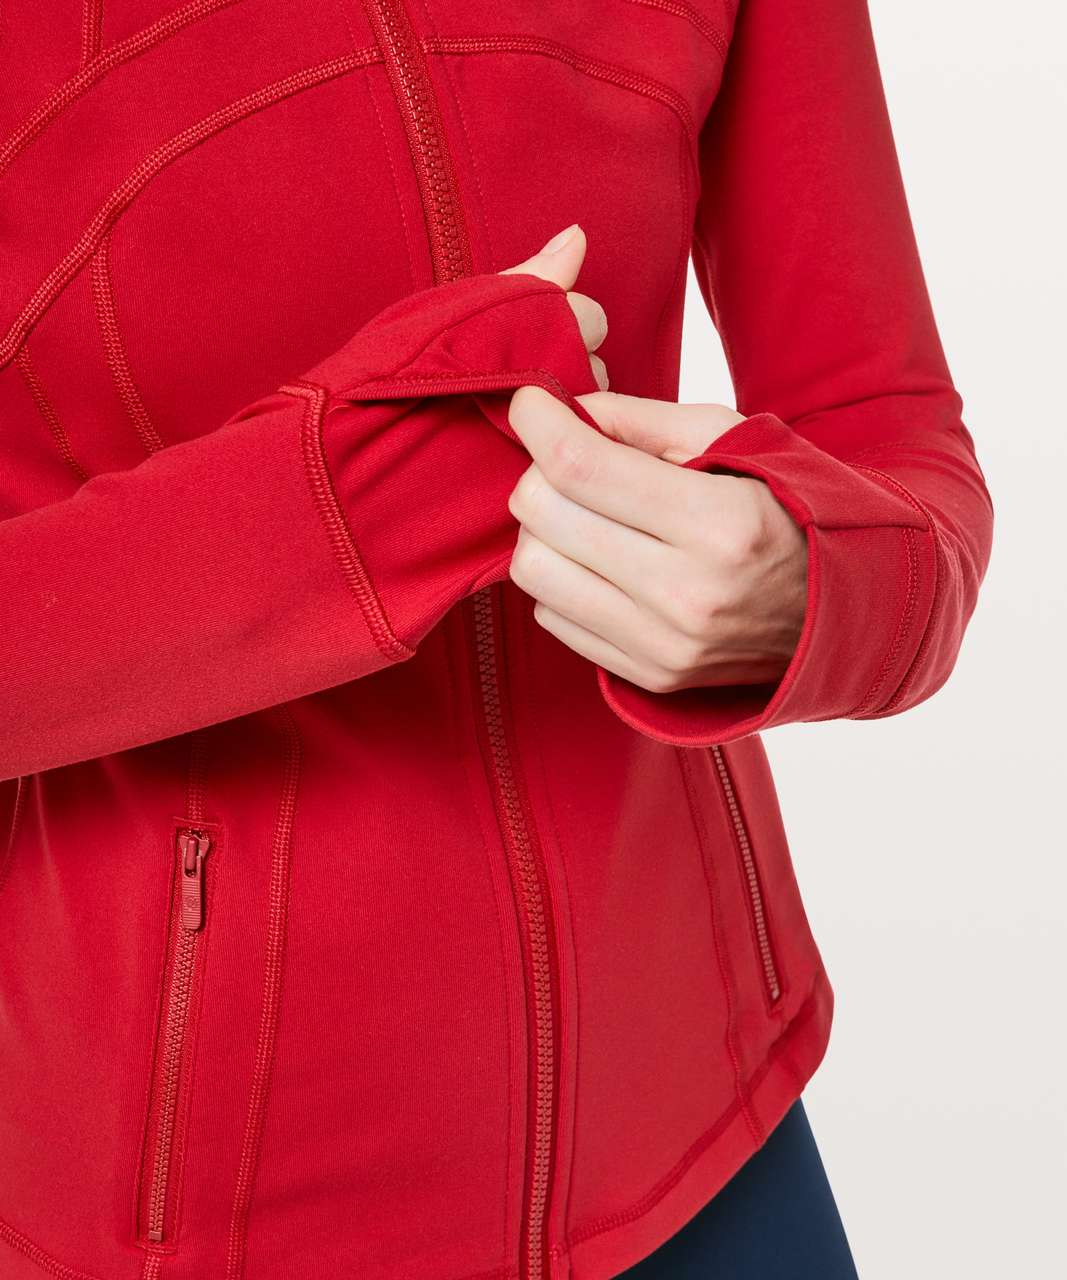 Lululemon Define Jacket - Dark Red